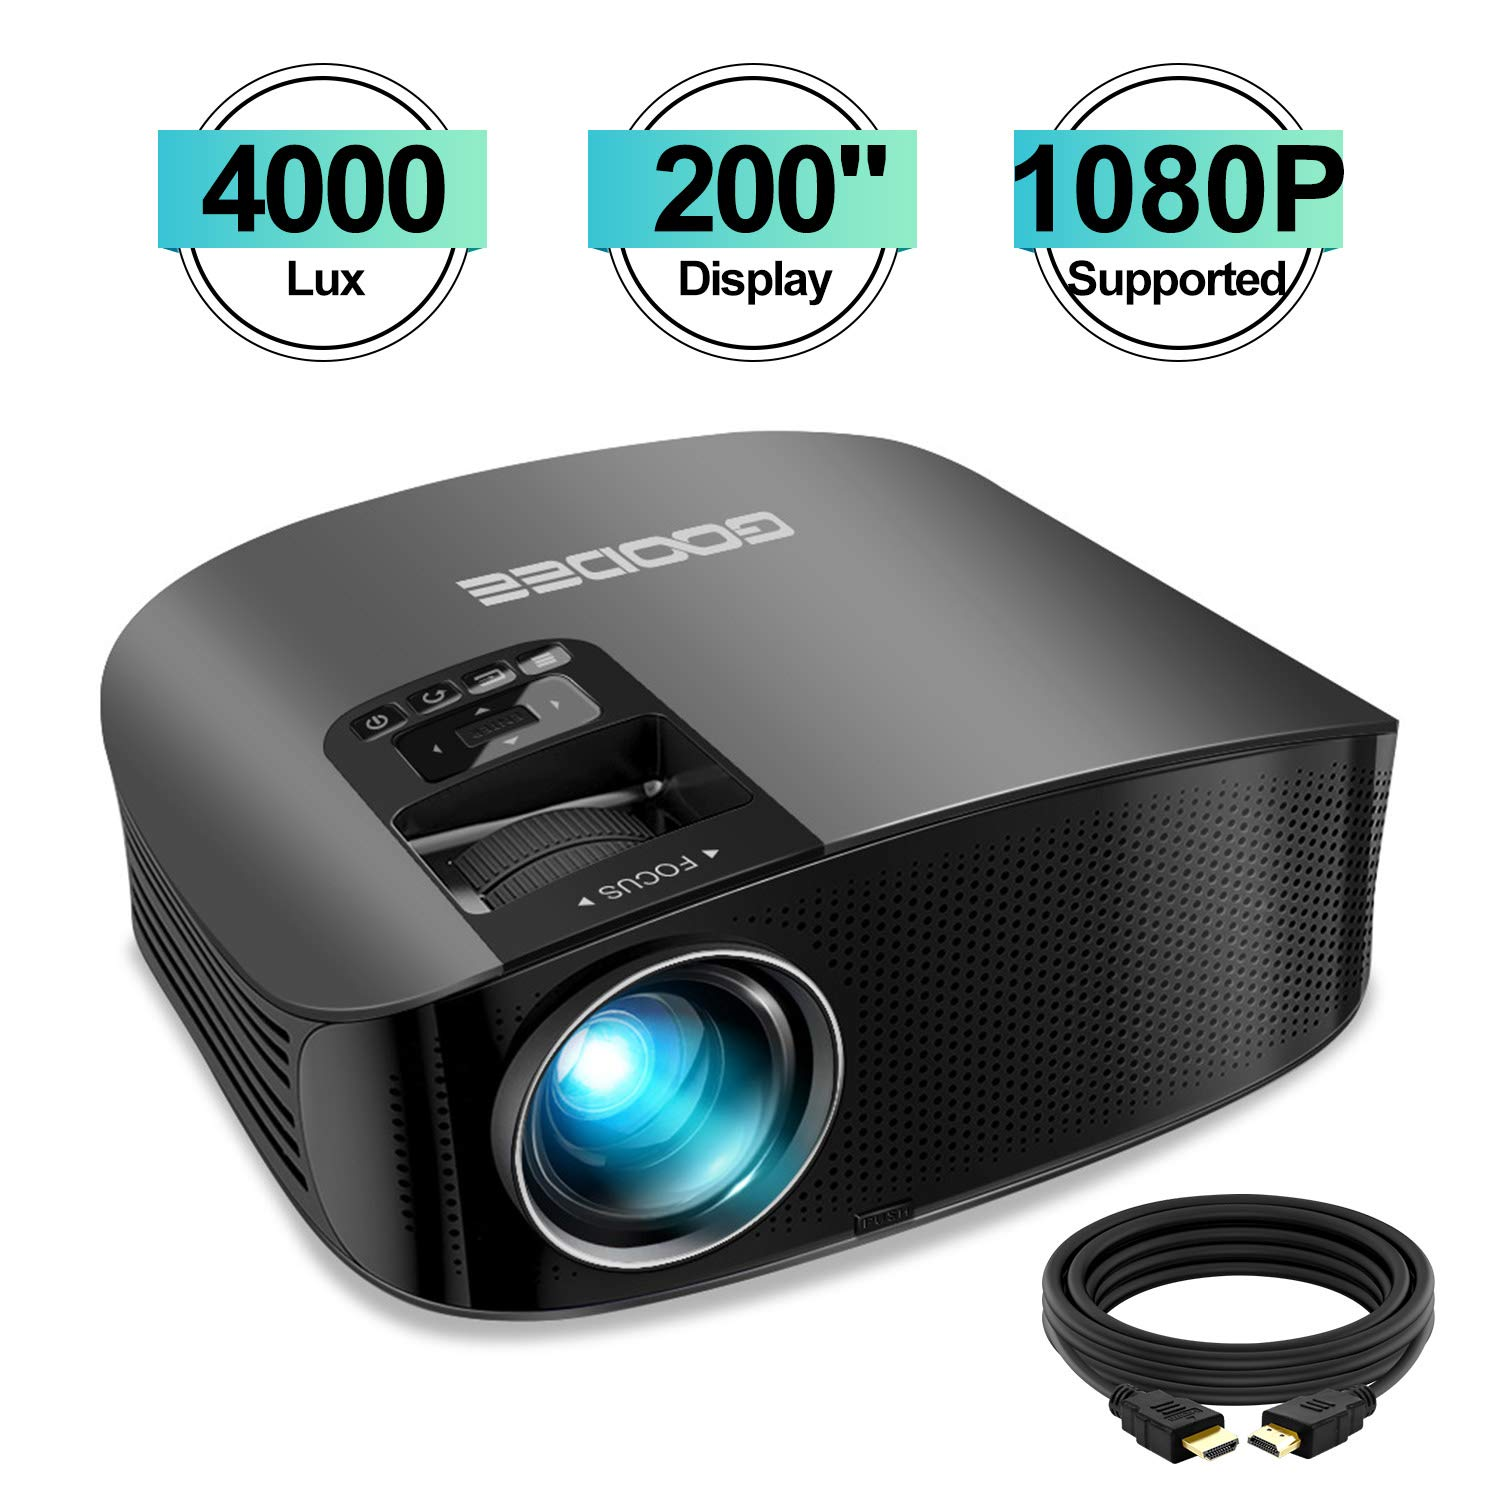 Projector, GooDee HD Video Projector 4000L Outdoor Movie Projector, 200'' Home Theater Projector Support 1080P, Compatible with Fire TV Stick, PS4, HDMI, VGA, AV and USB